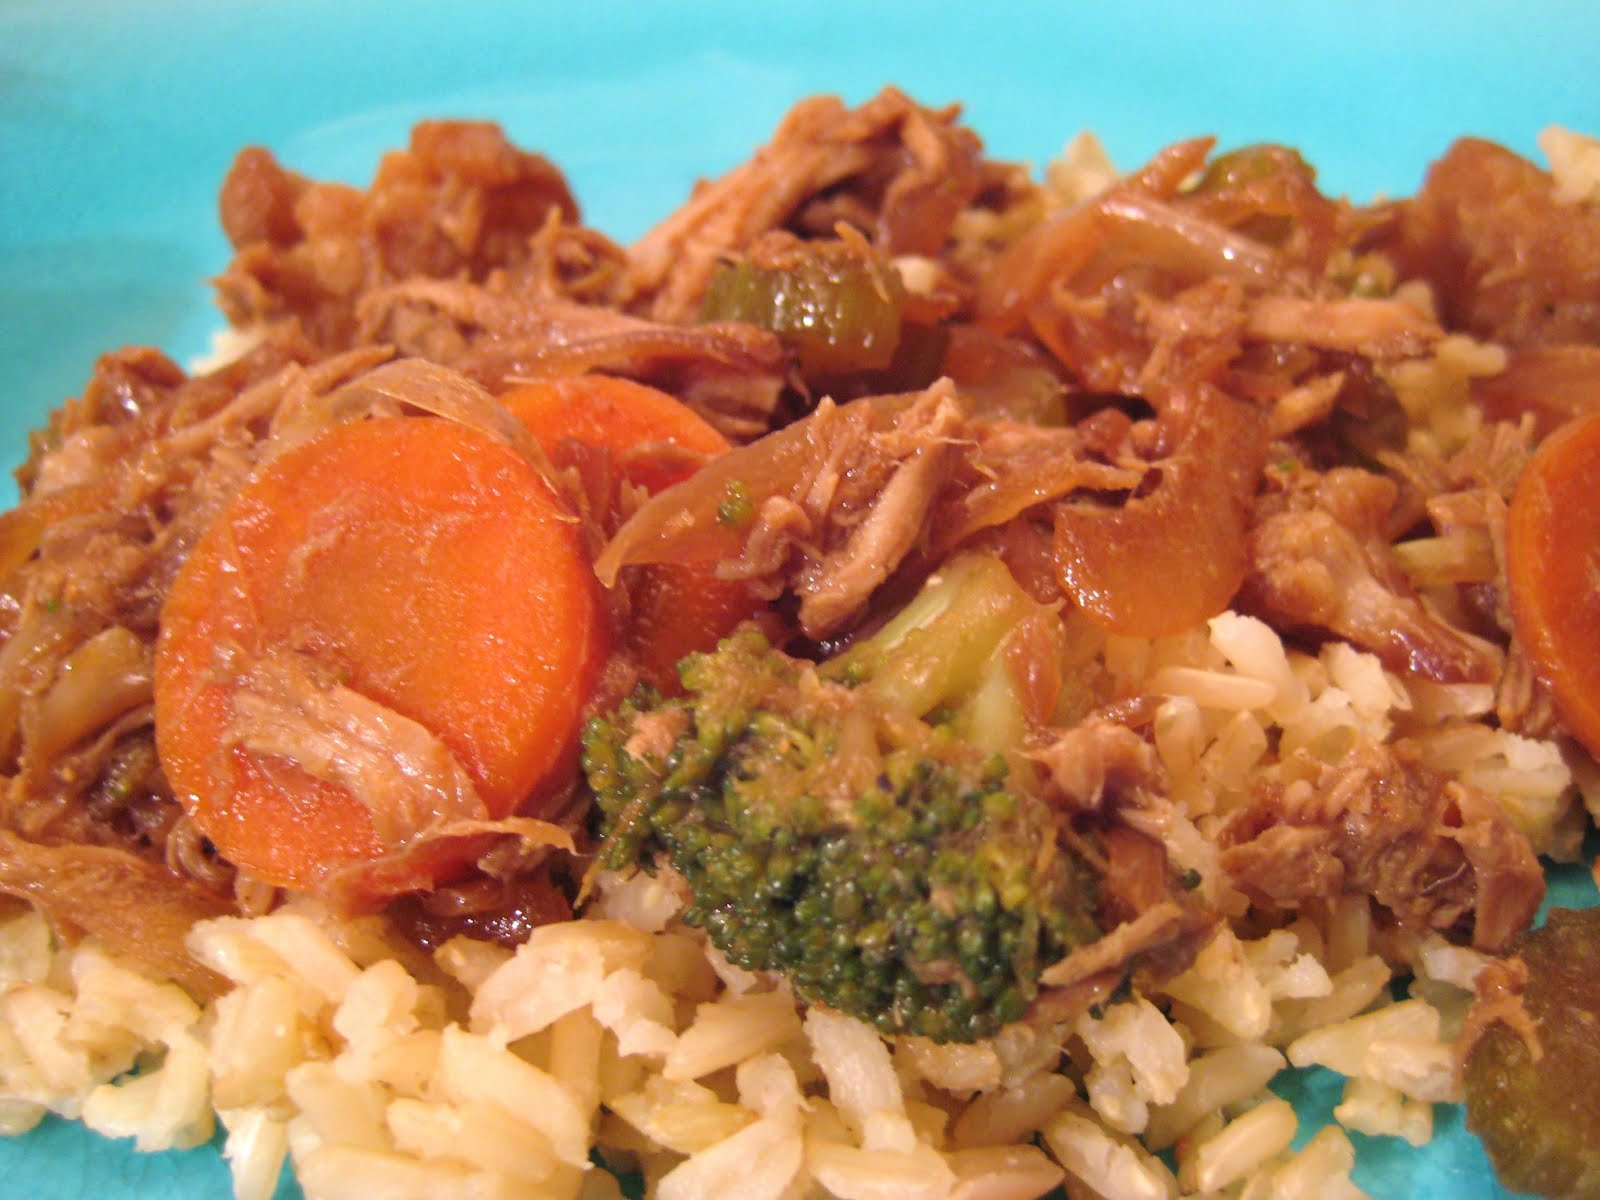 Sisters' Sweet Tooth: Chicken and Veggie Stir Fry